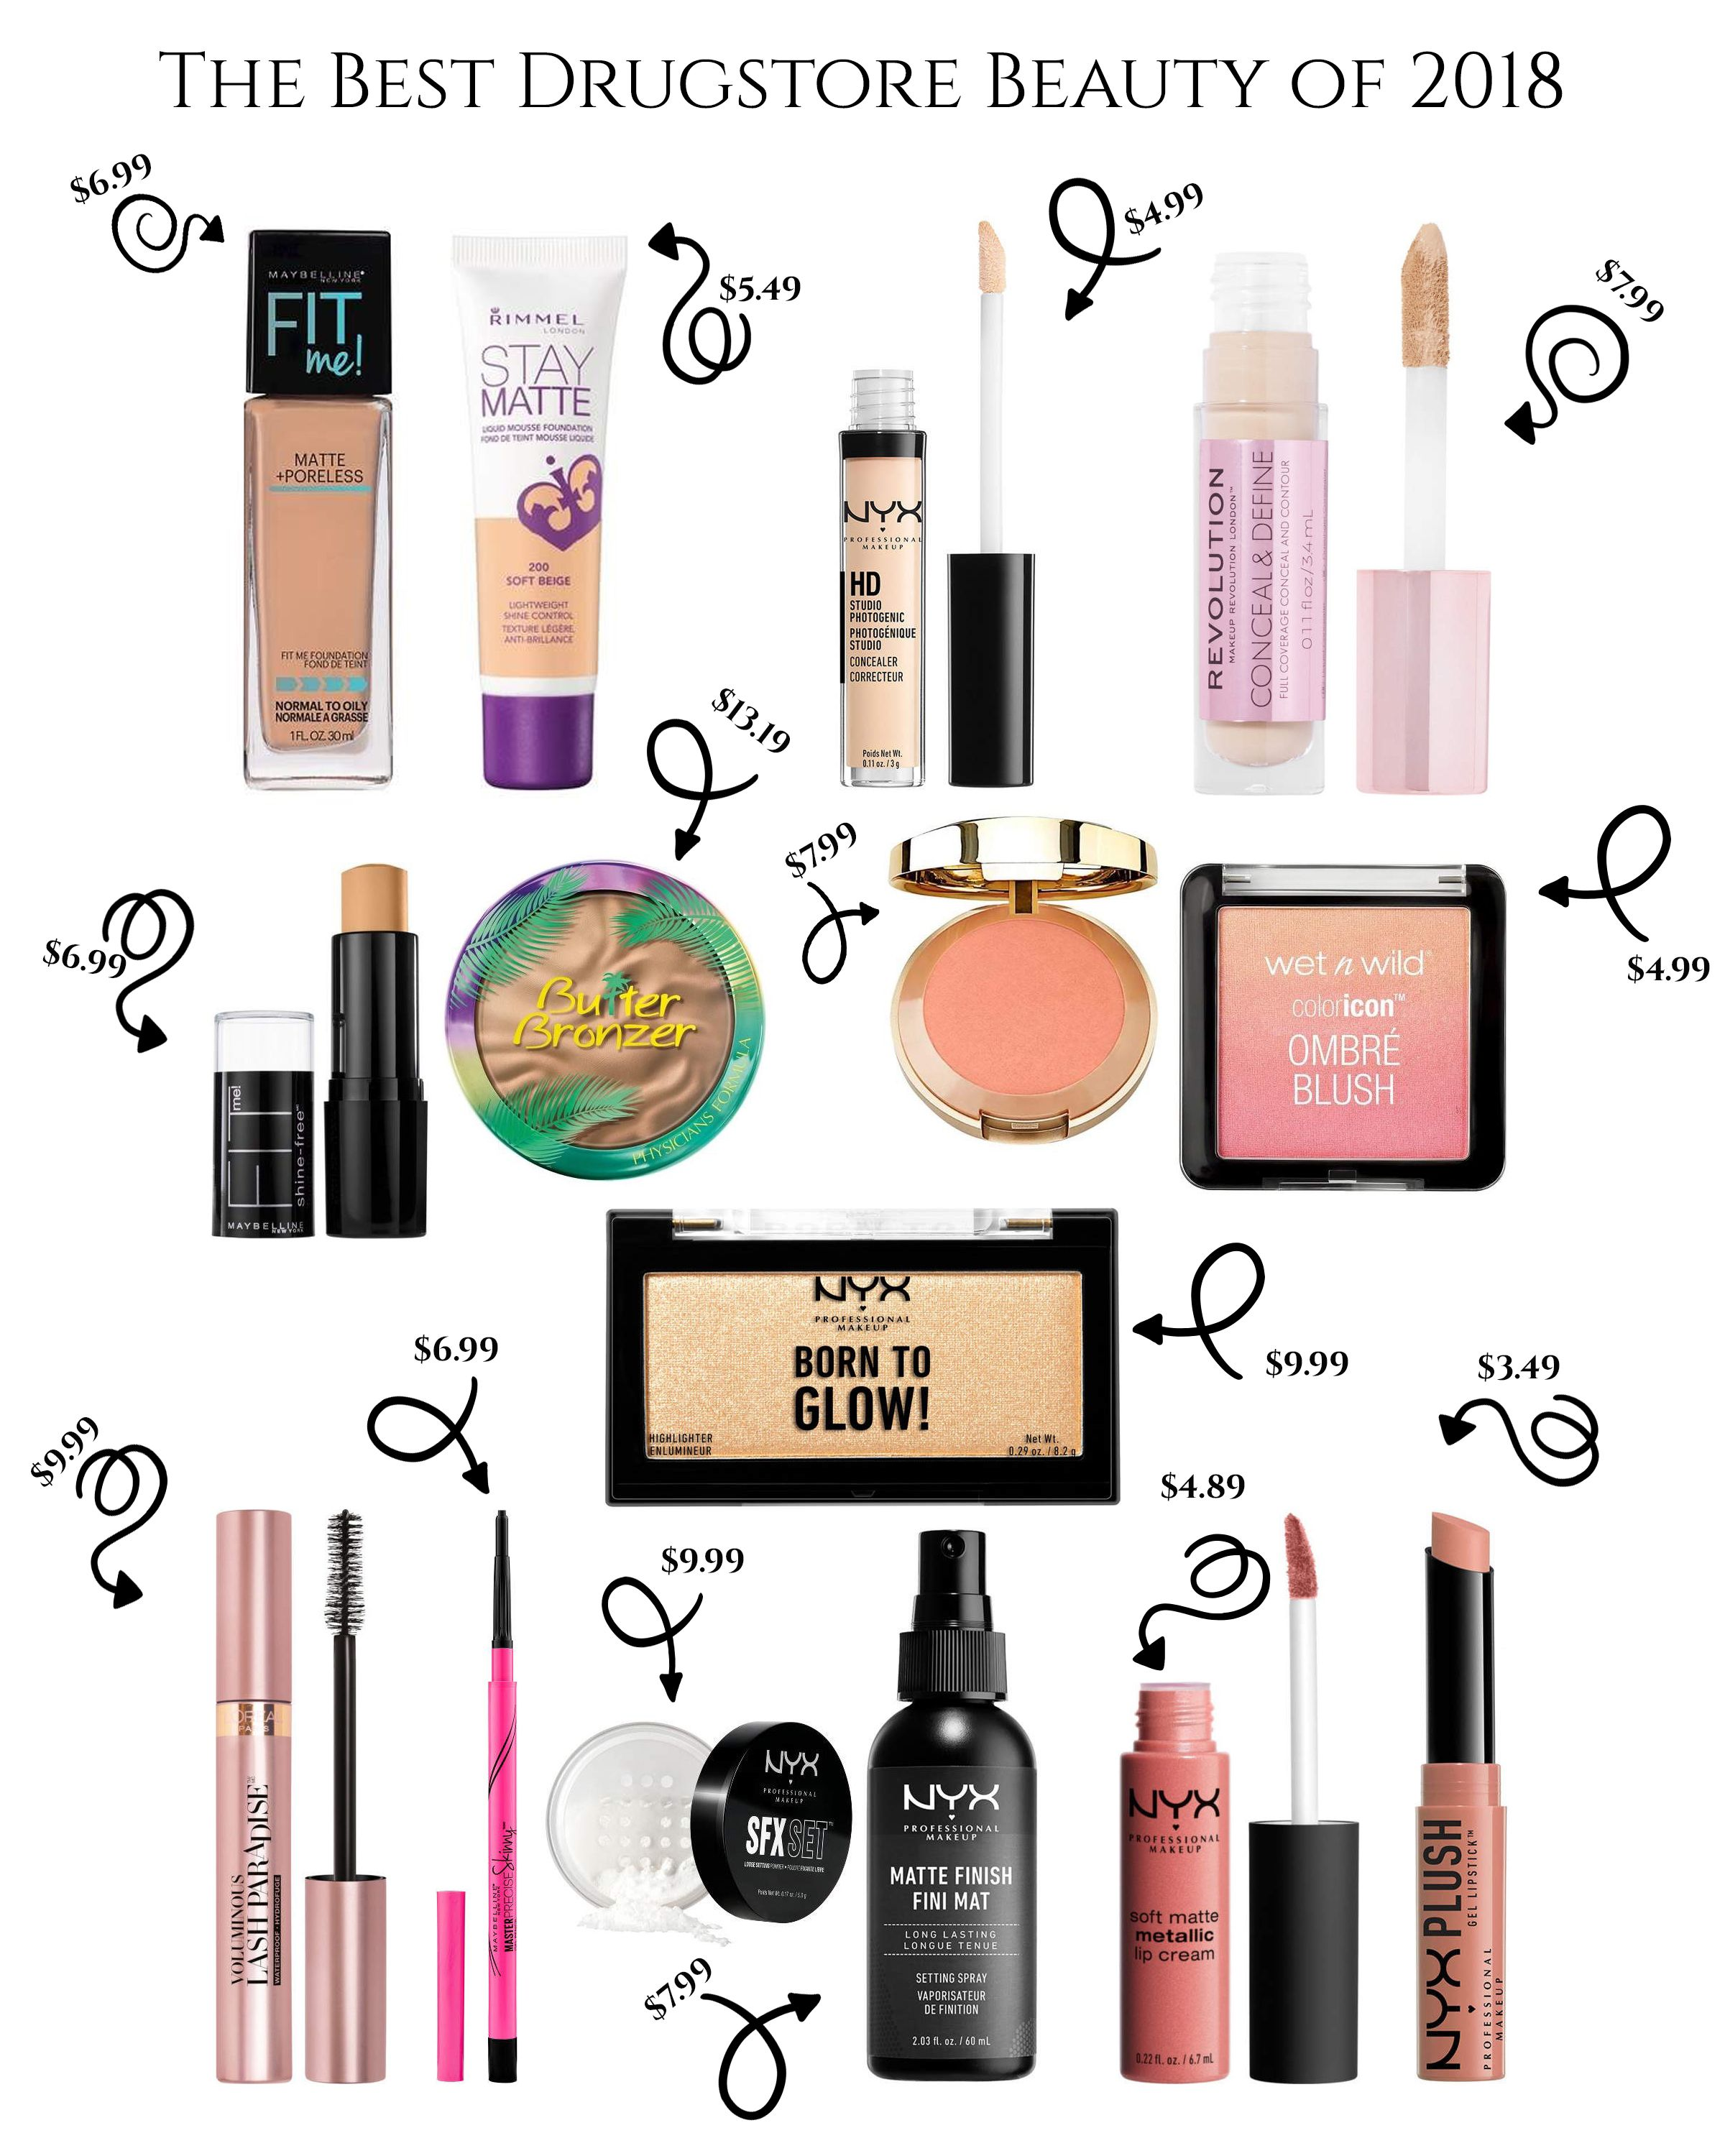 The Ultimate Drugstore Beauty Guide that highlight the